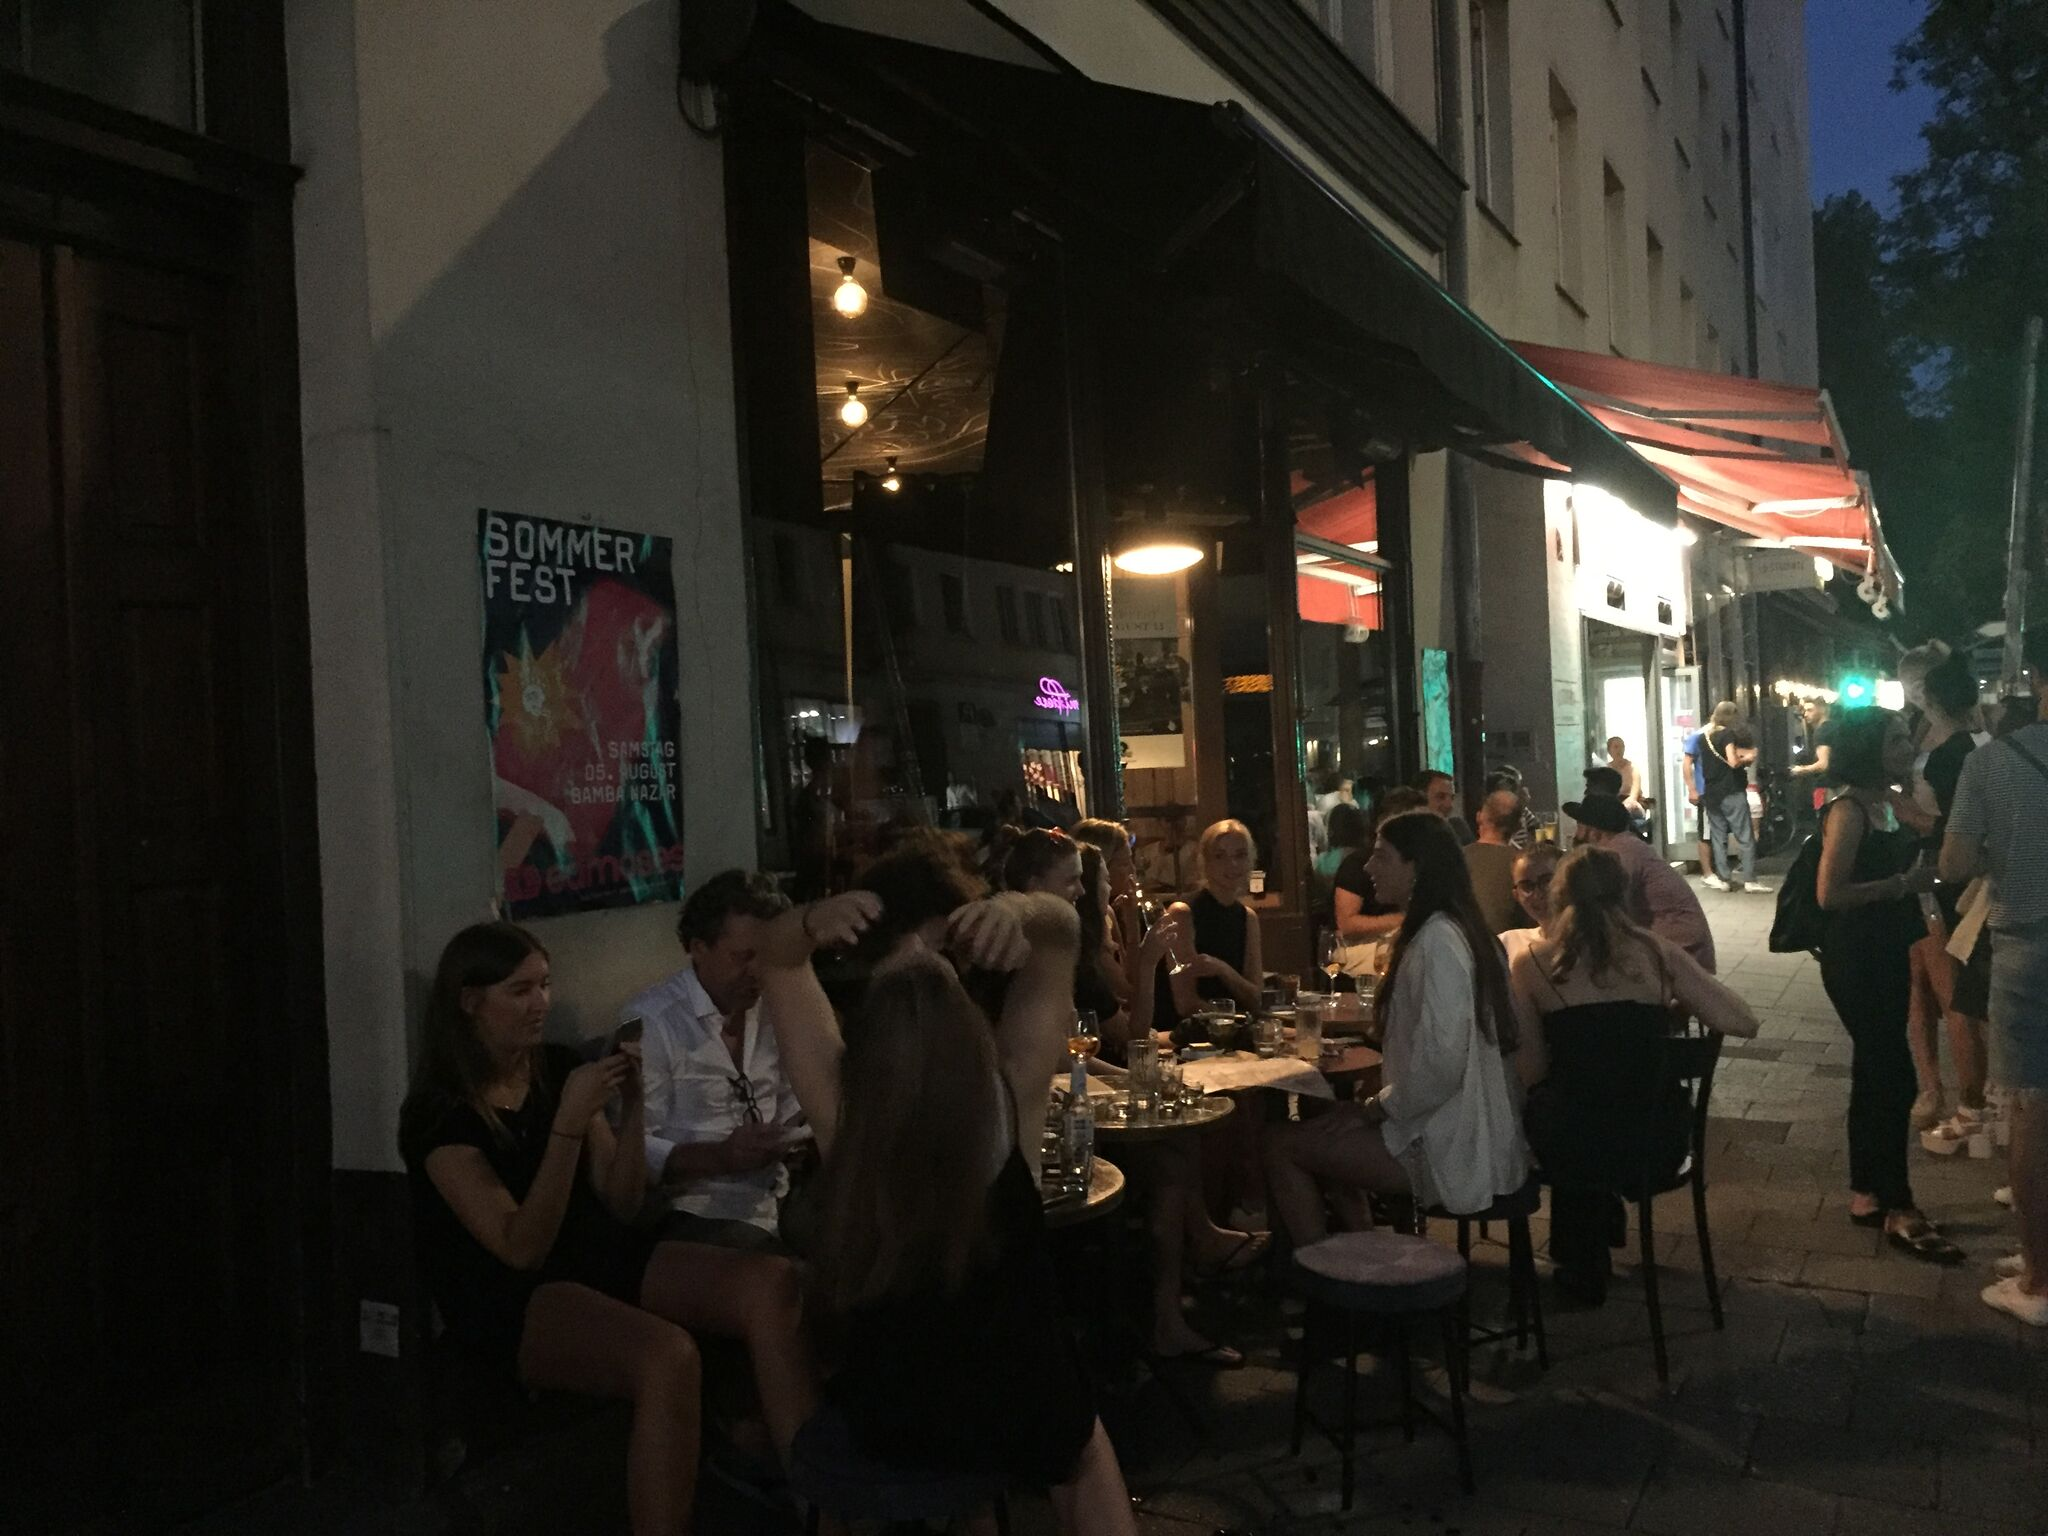 IMG 2251 1024x768 - Best Outdoor Bars and Rooftops for a Drink in Munich